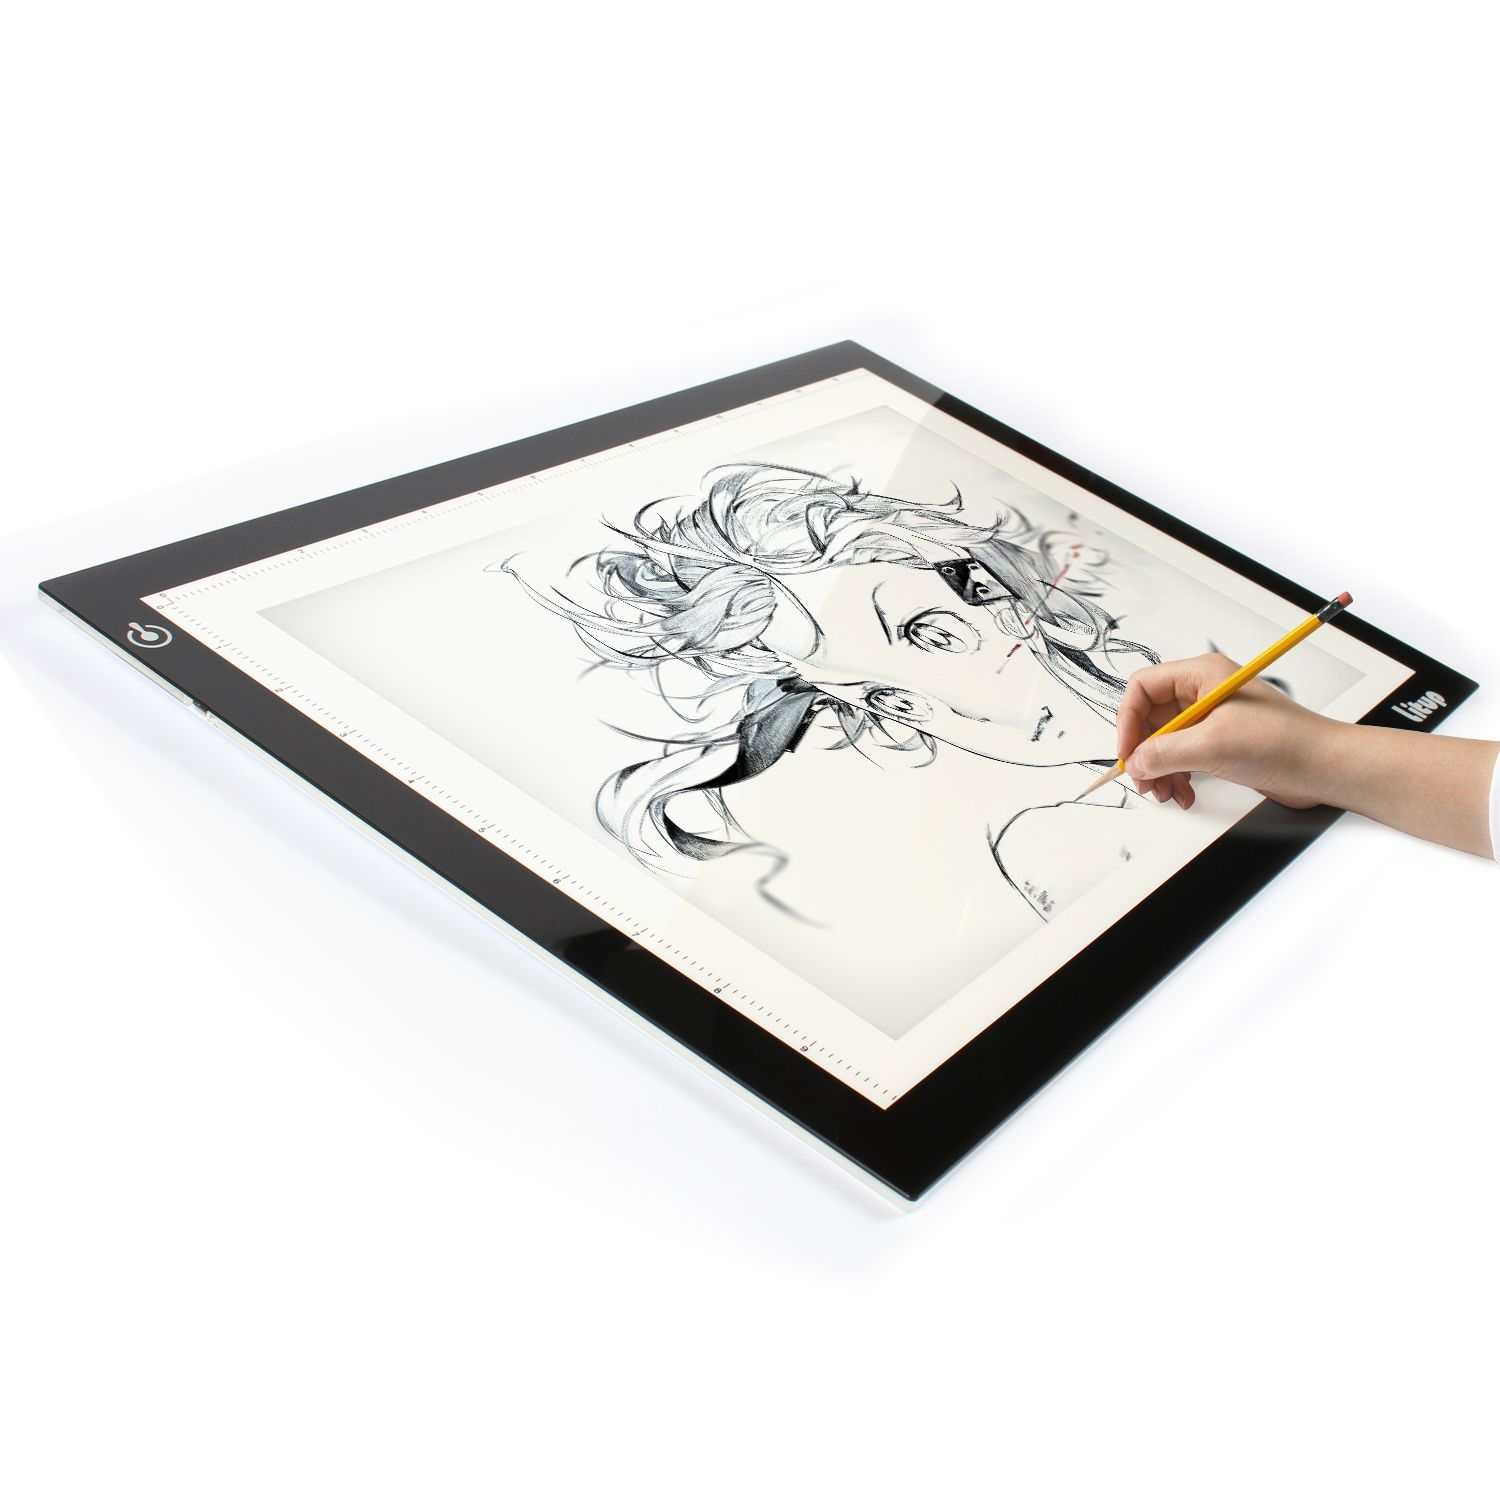 Super thin and bright lightbox with USB cable A4S/L4S for drawing, animation,